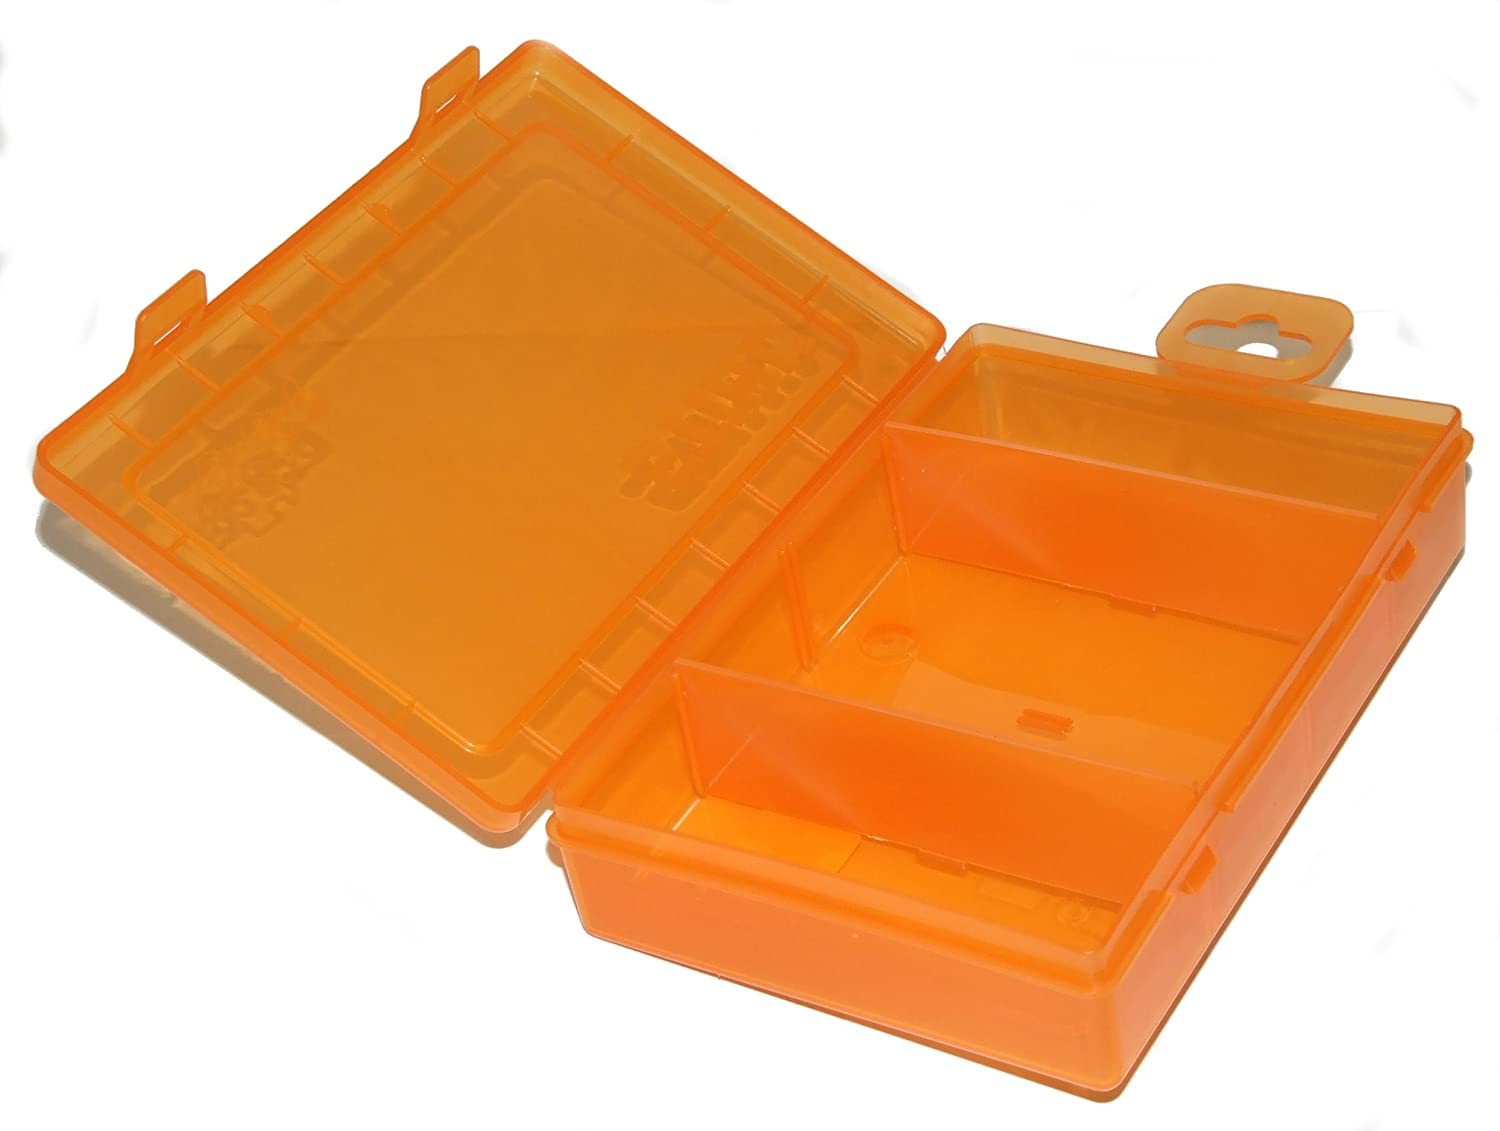 Stihl Storage Case For Chainsaw Saw Chains 0000 882 5900